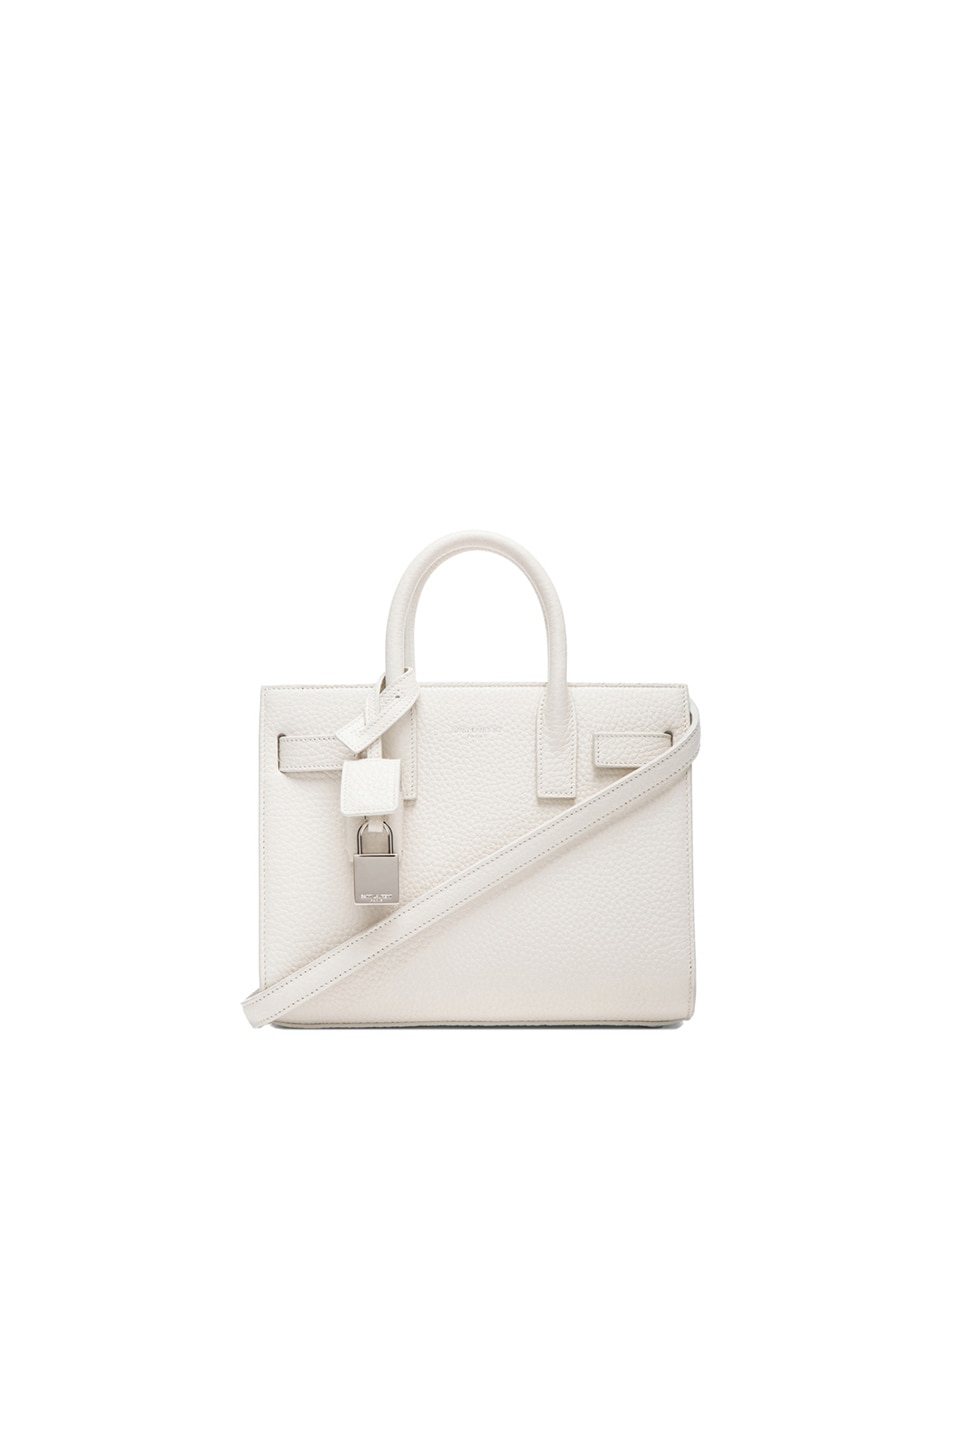 Image 1 of Saint Laurent Nano Sac De Jour Carryall Bag in White